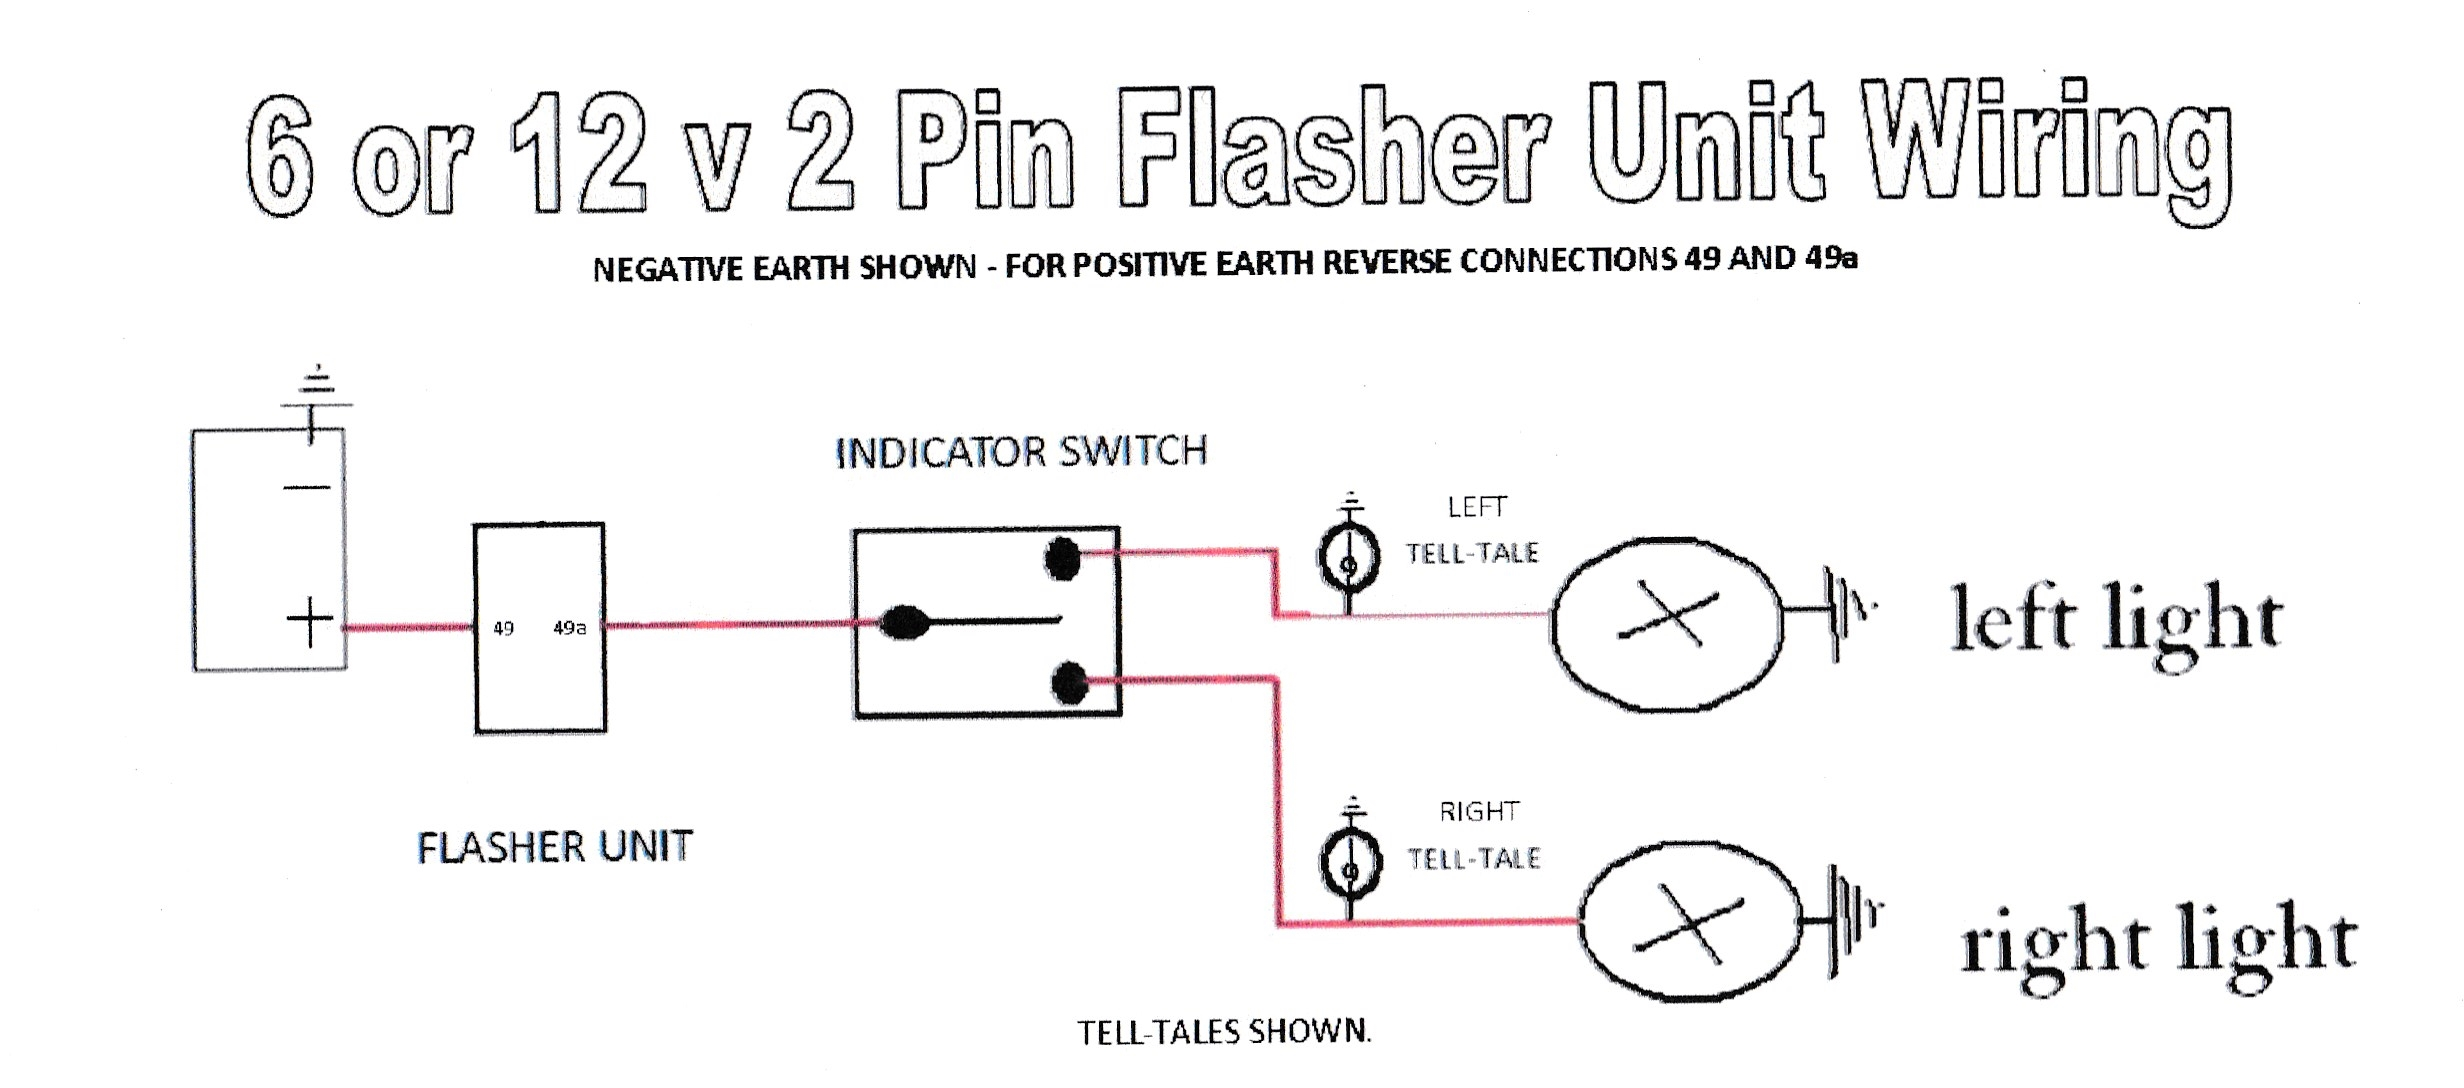 Wiring 12v Switch With Indicator Light | eStrategyS.co